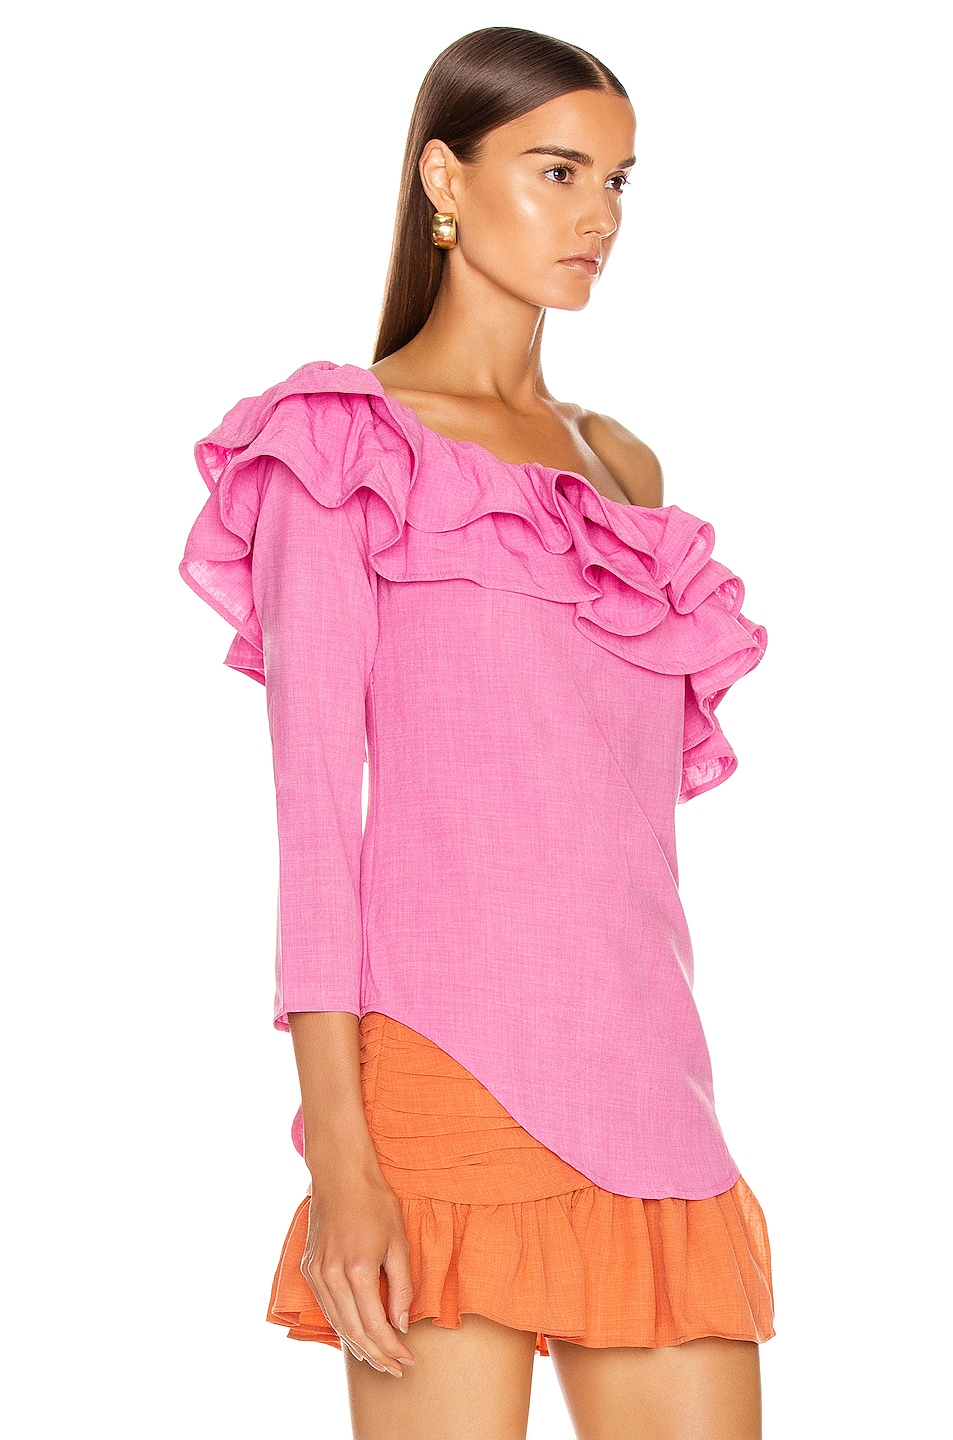 Image 2 of Atoir Not Going Back Top in Fuchsia Pink